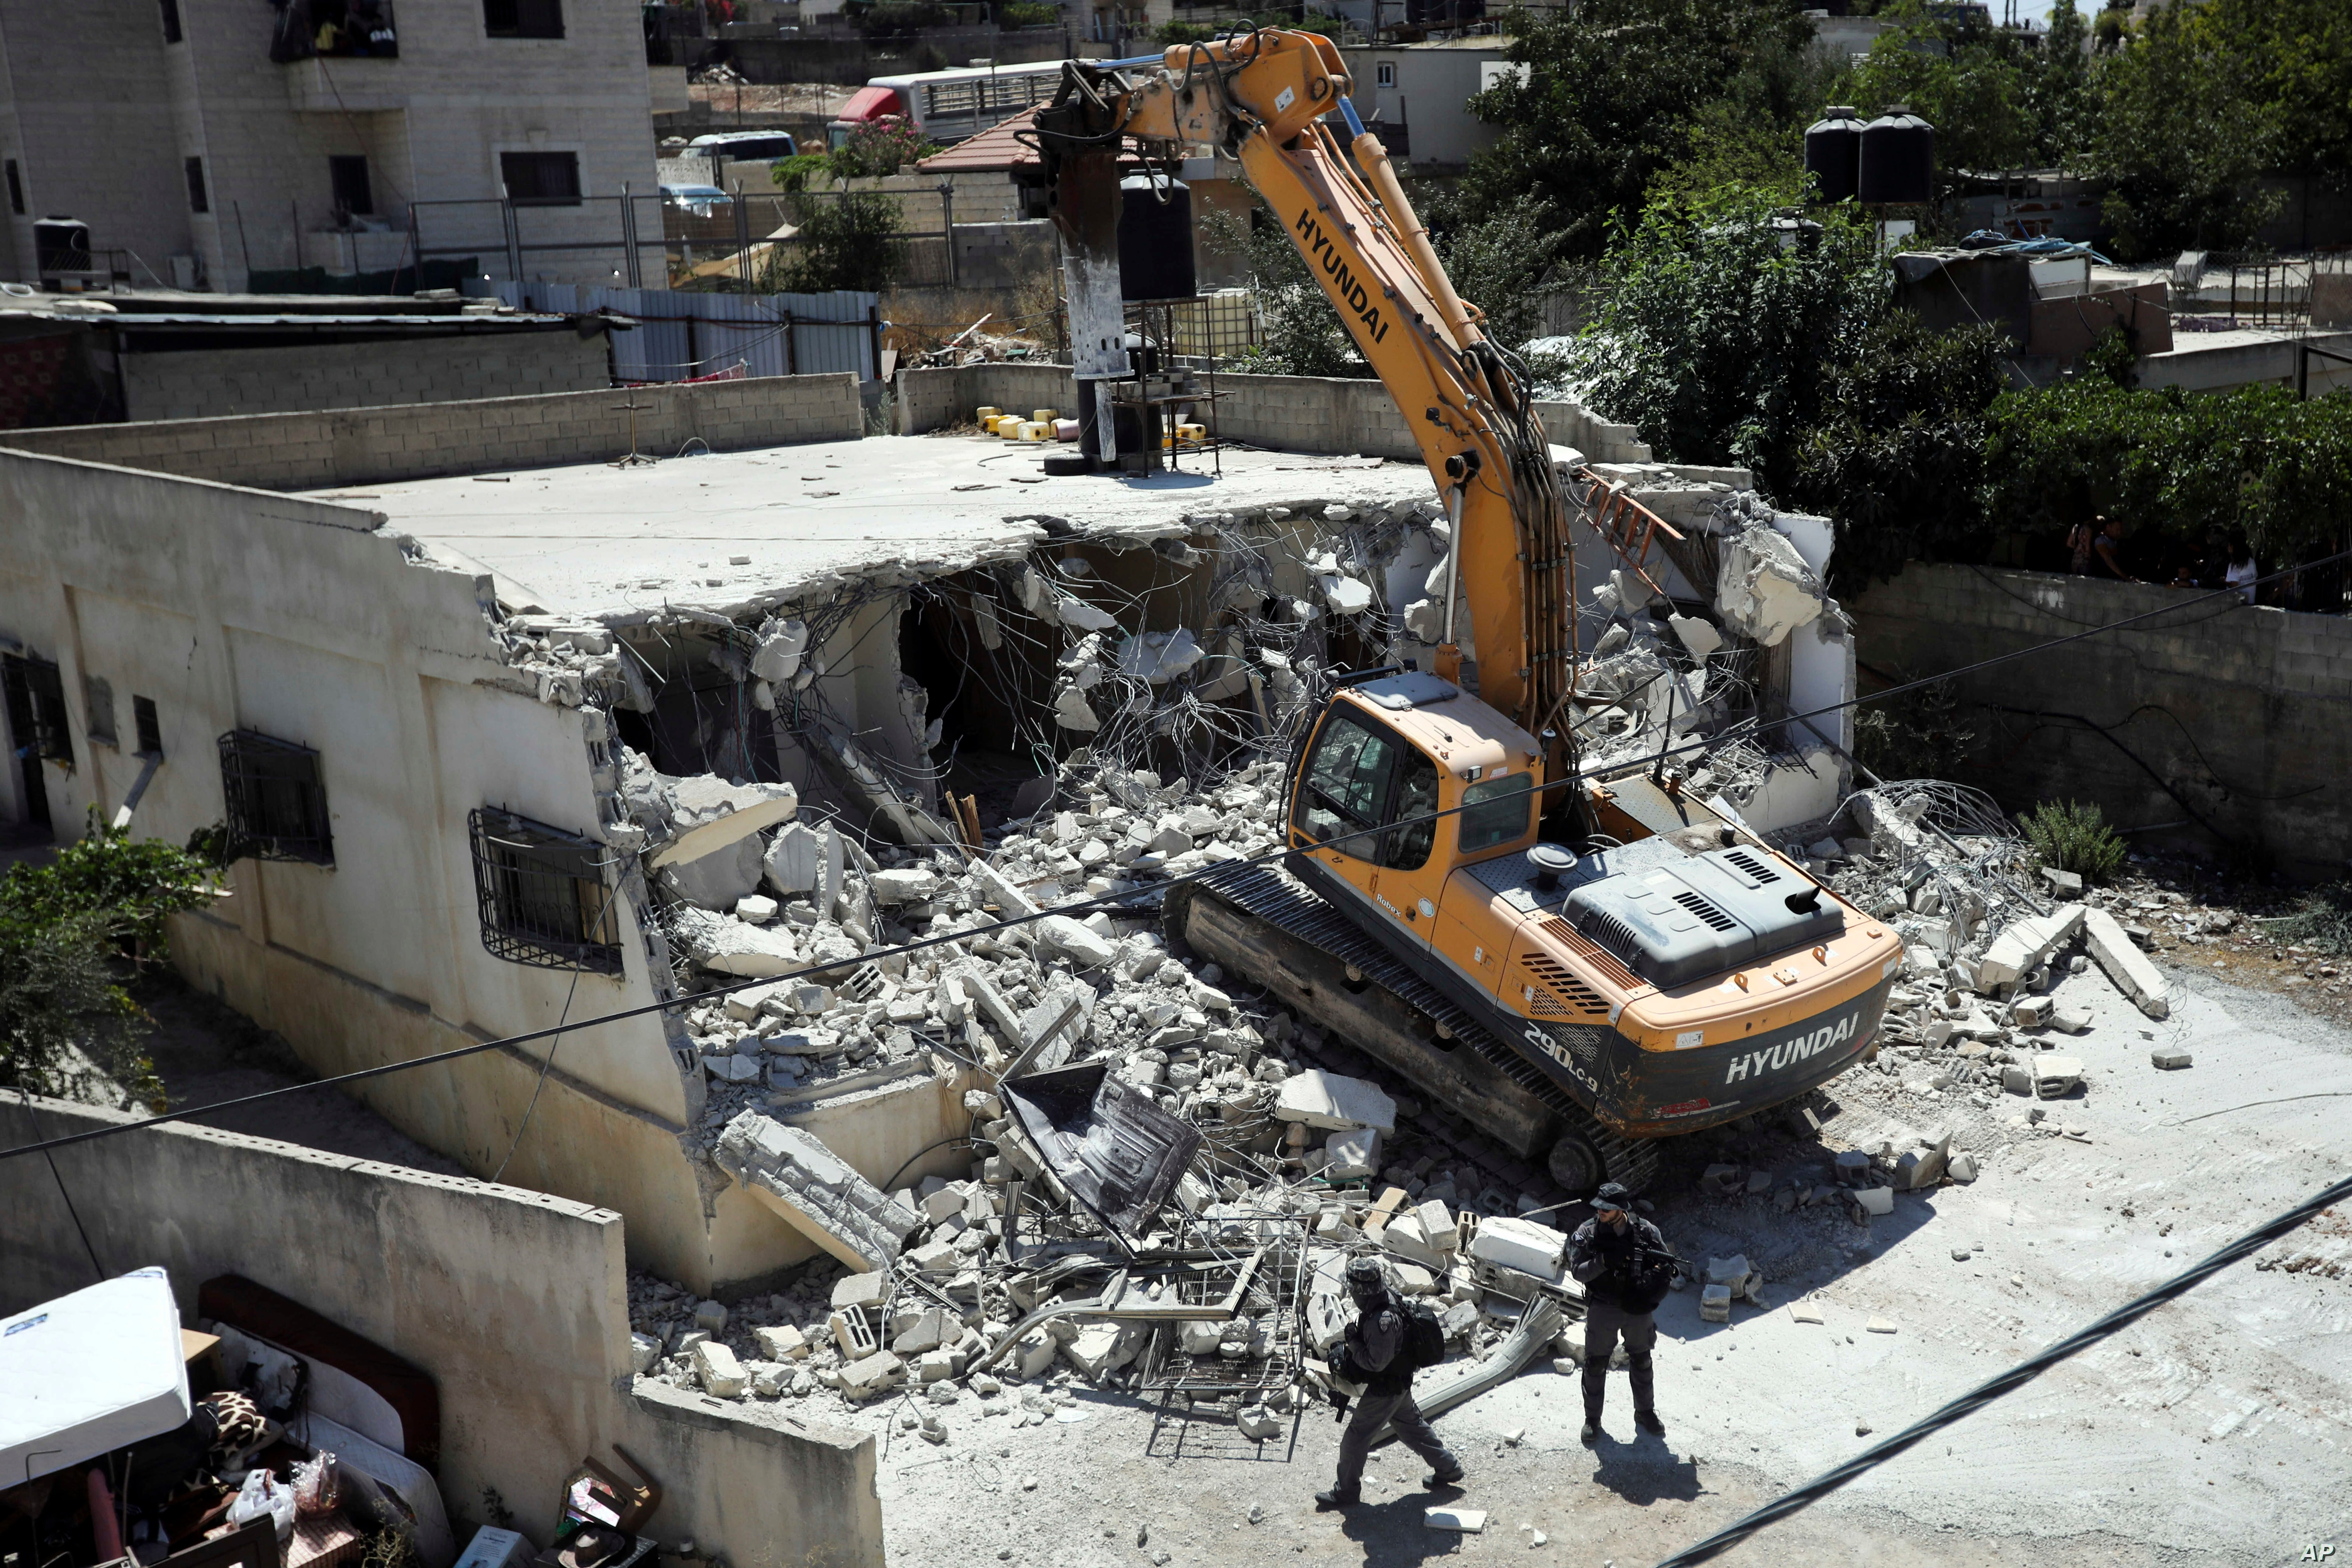 Violated Rights: A new report documenting Israel's perpetual human rights abuses of Palestinian rights in East Jerusalem